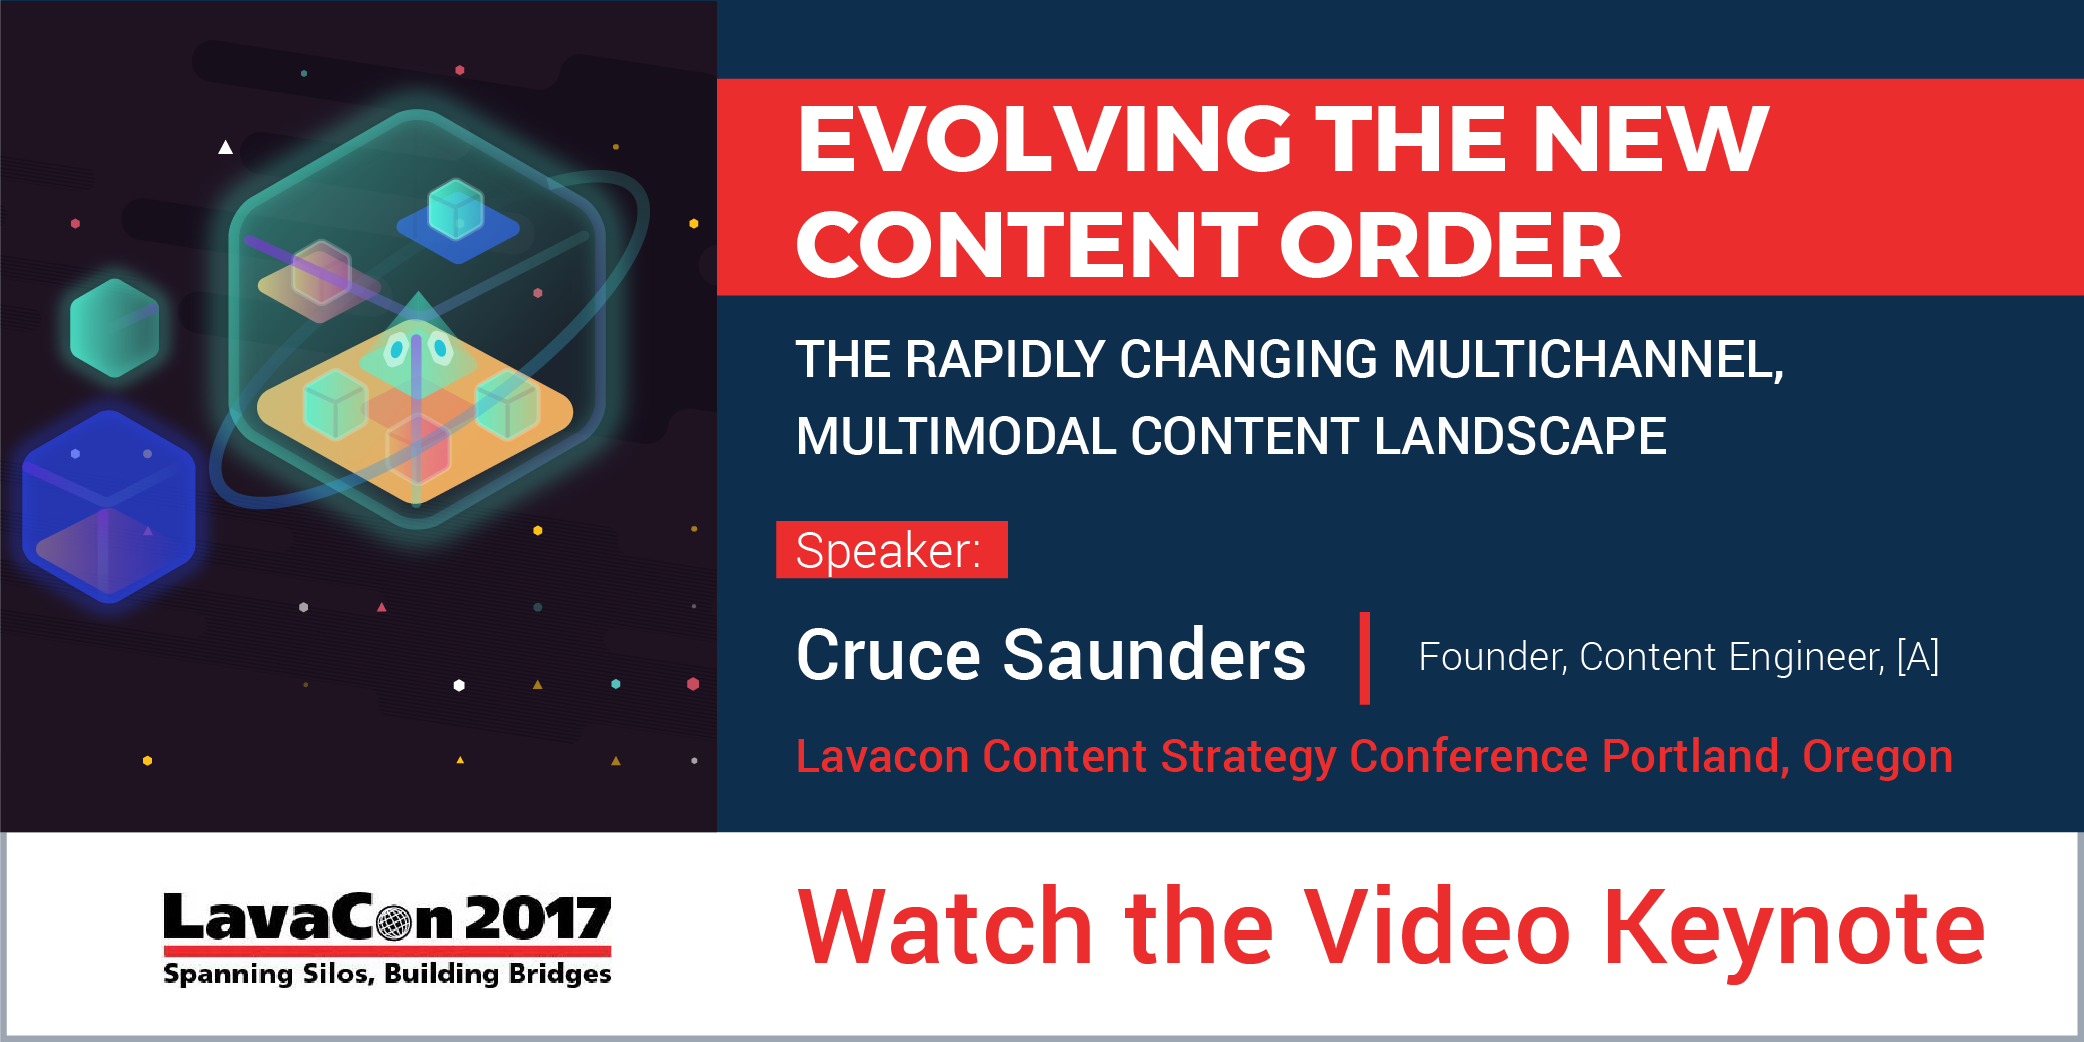 LavaCon Content Strategy Conference: [A]'s Founder Cruce Saunders Presents